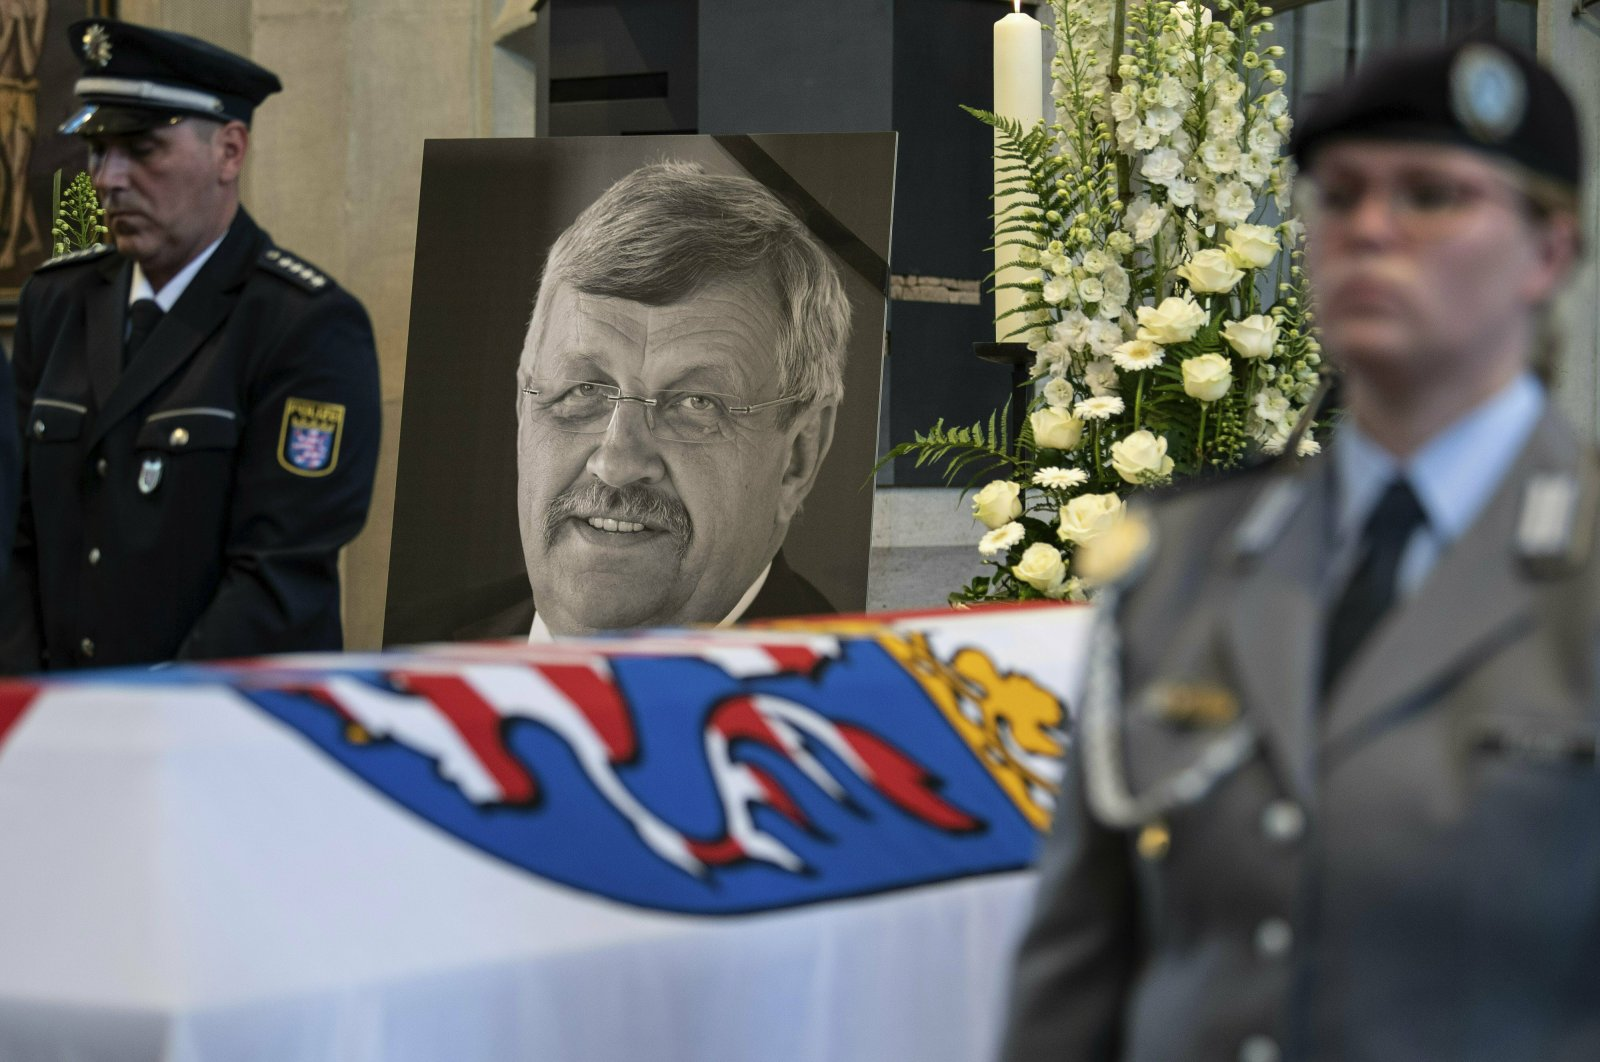 In this file photo a picture of Walter Luebcke stands behind his coffin during the funeral service in Kassel, Germany, June 13, 2019. (AP Photo)